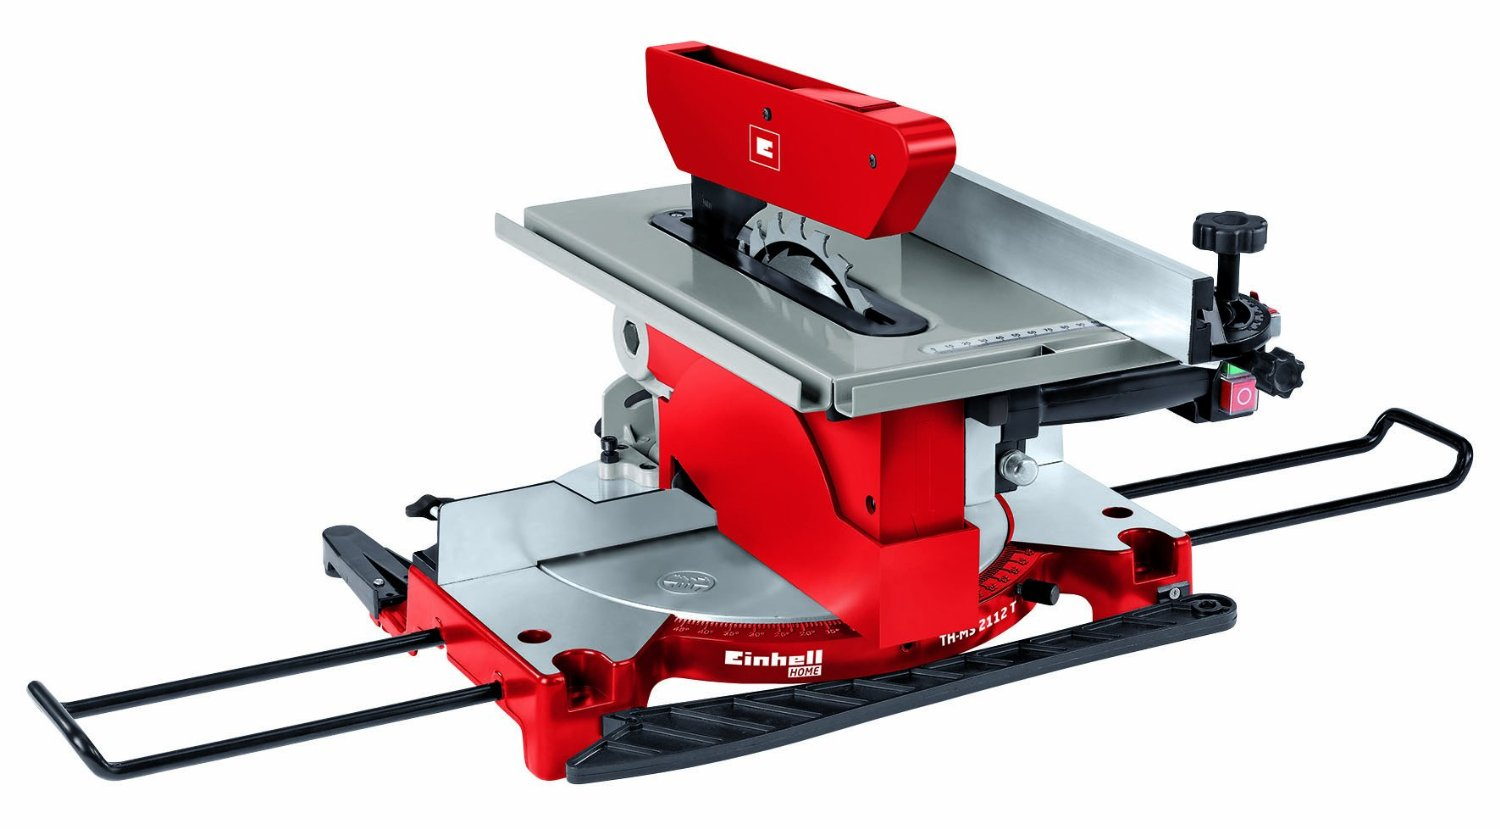 1.Einhell TH-MS 2112